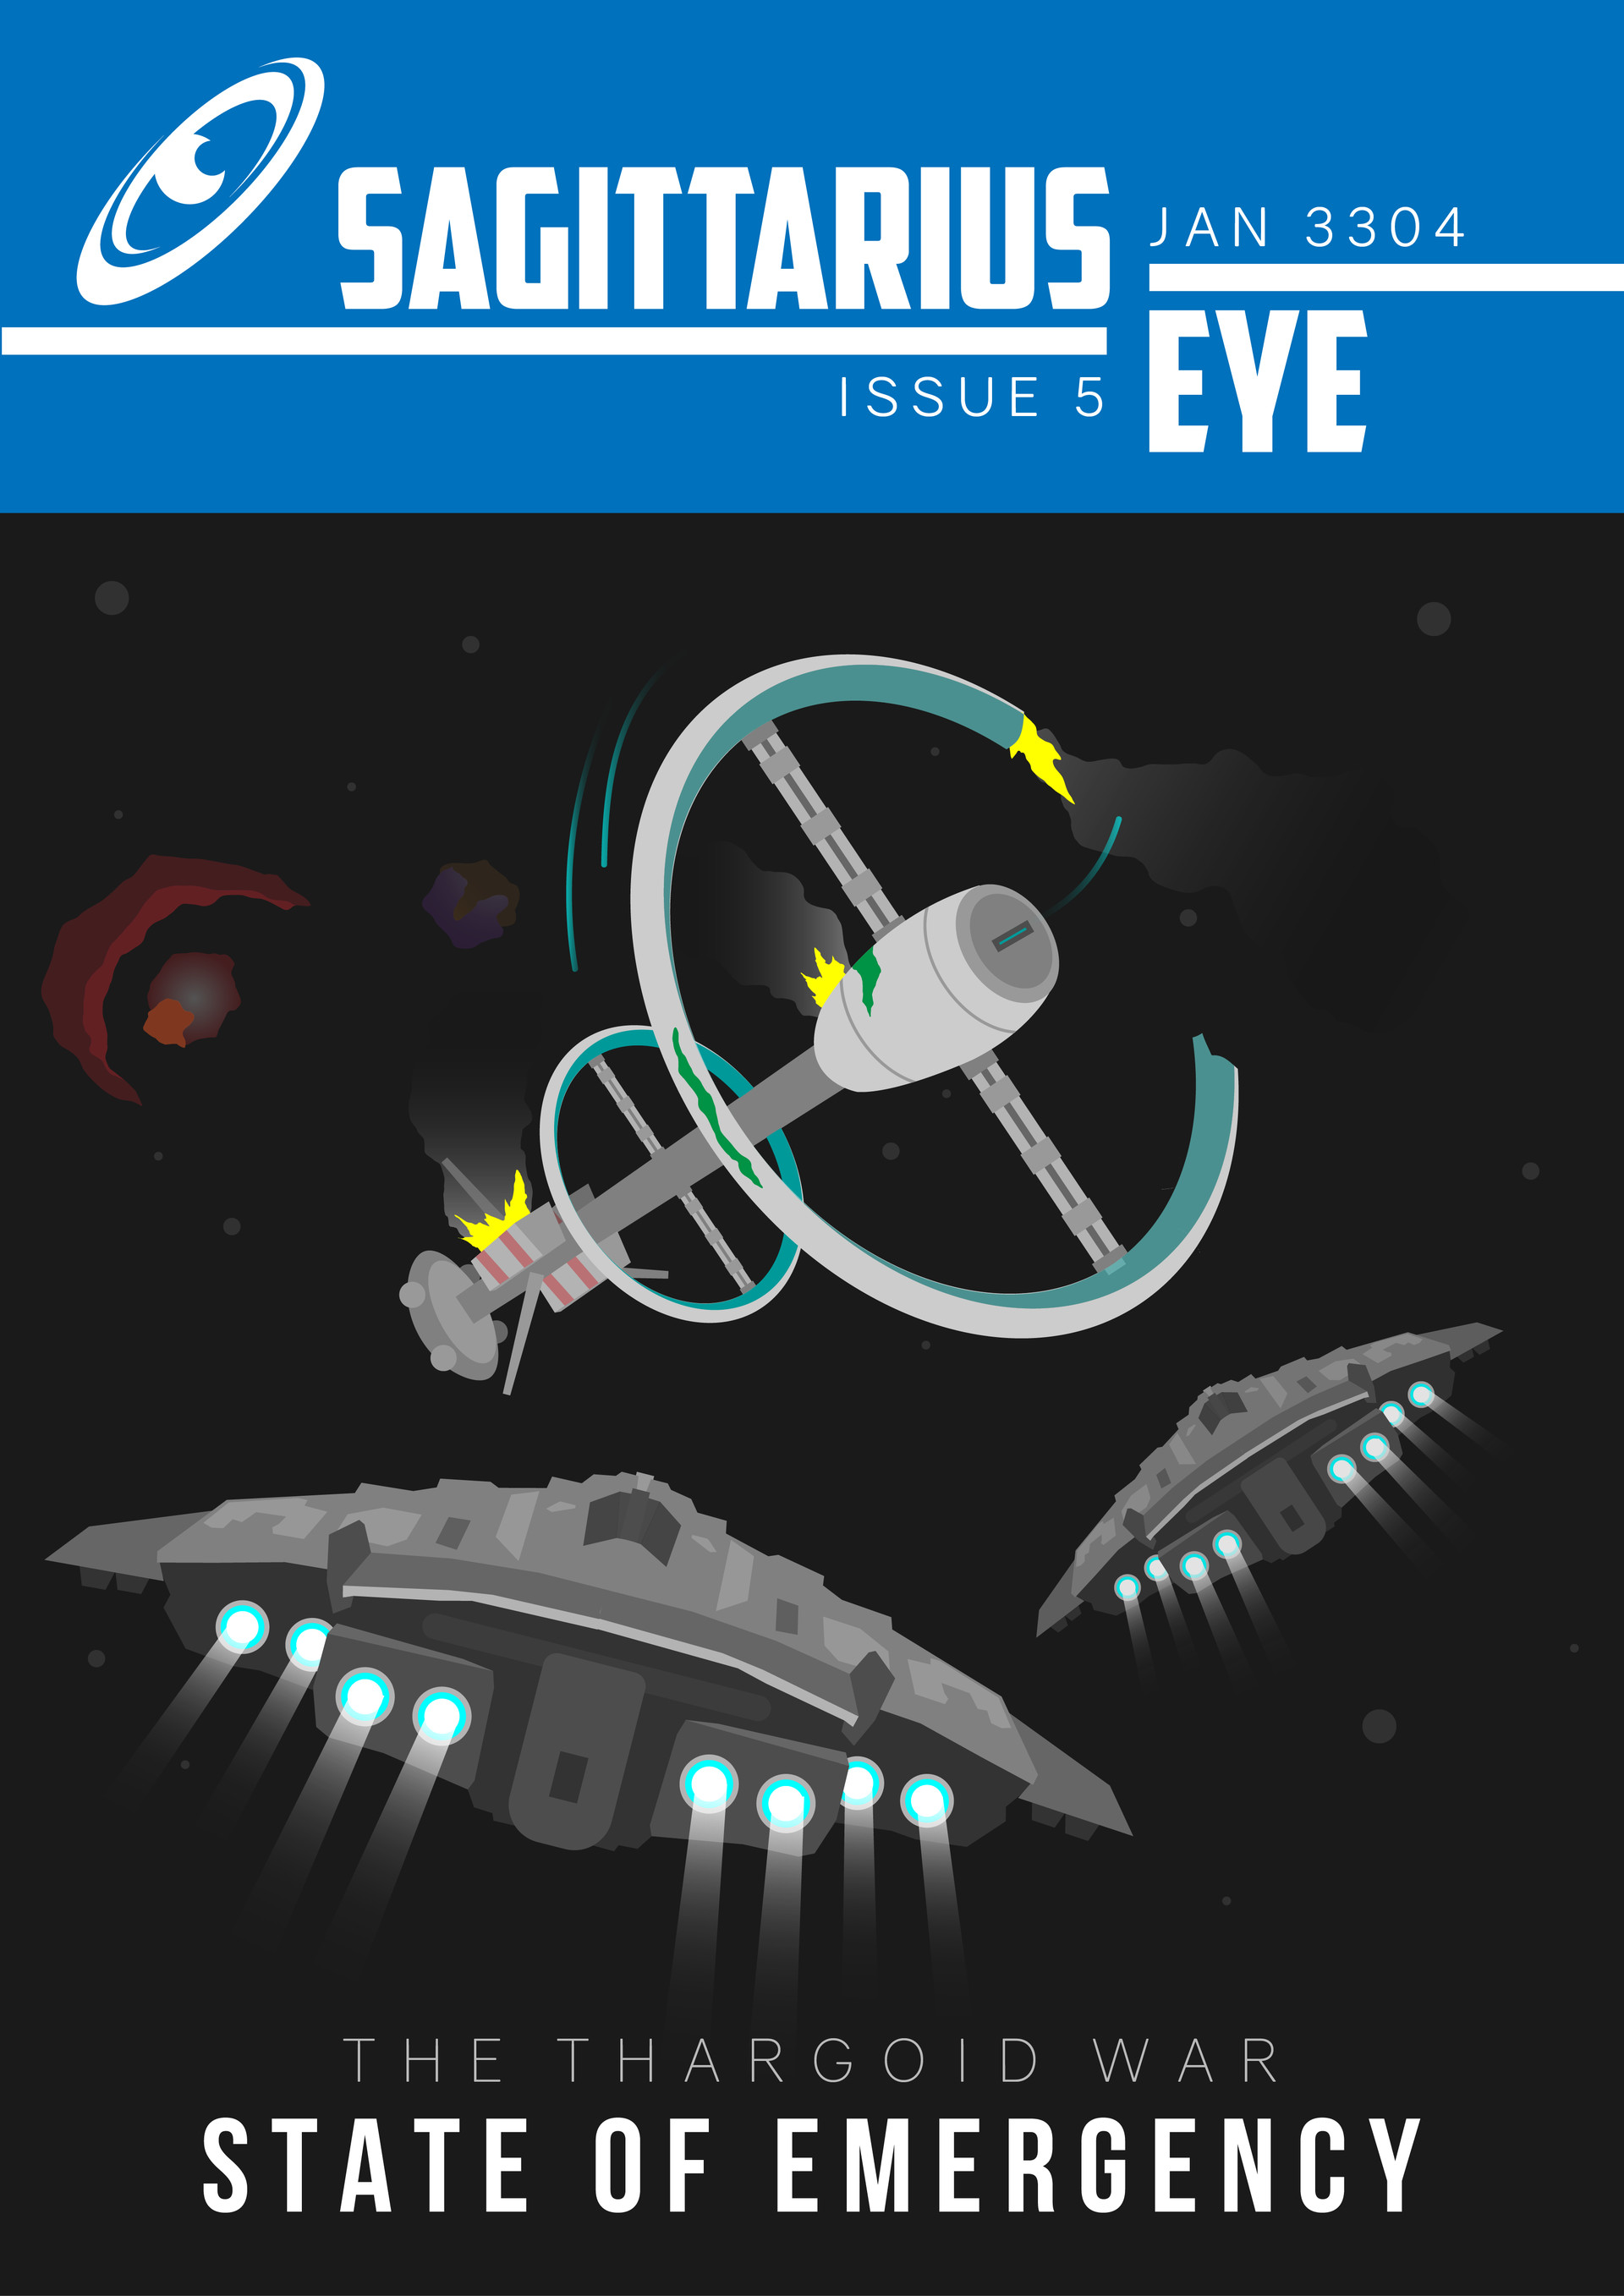 Mathew maddison sagittarius eye issue covers 01